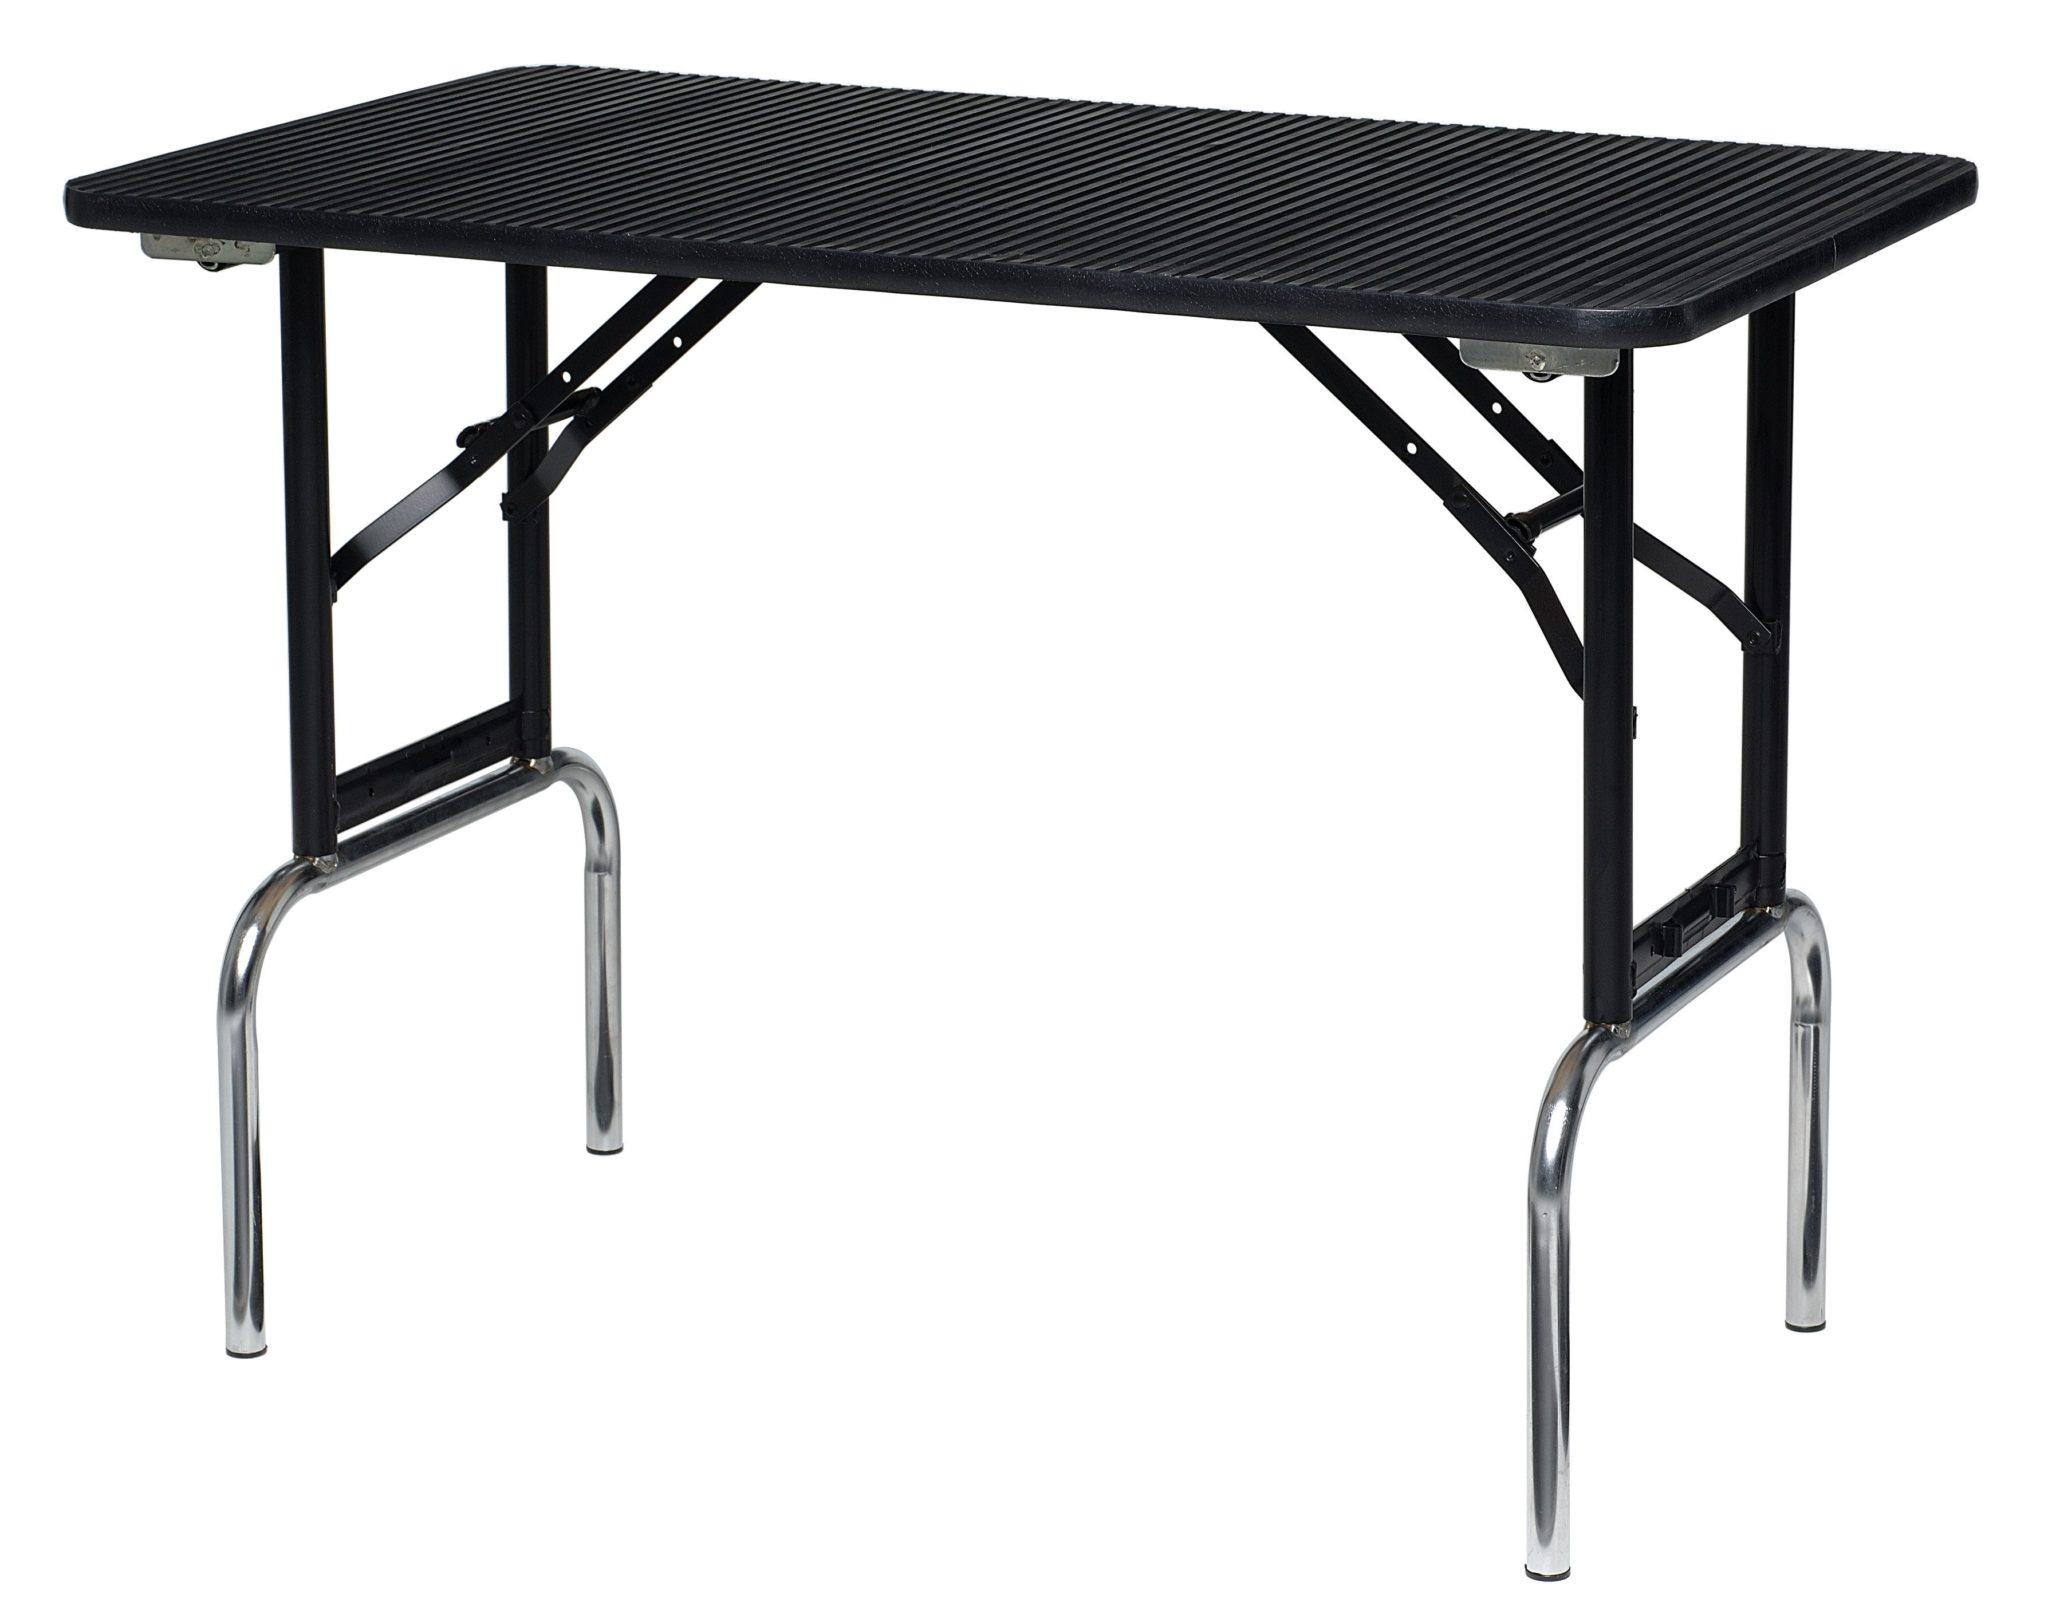 Folding Table With Adjustable Legs Images Bar Height